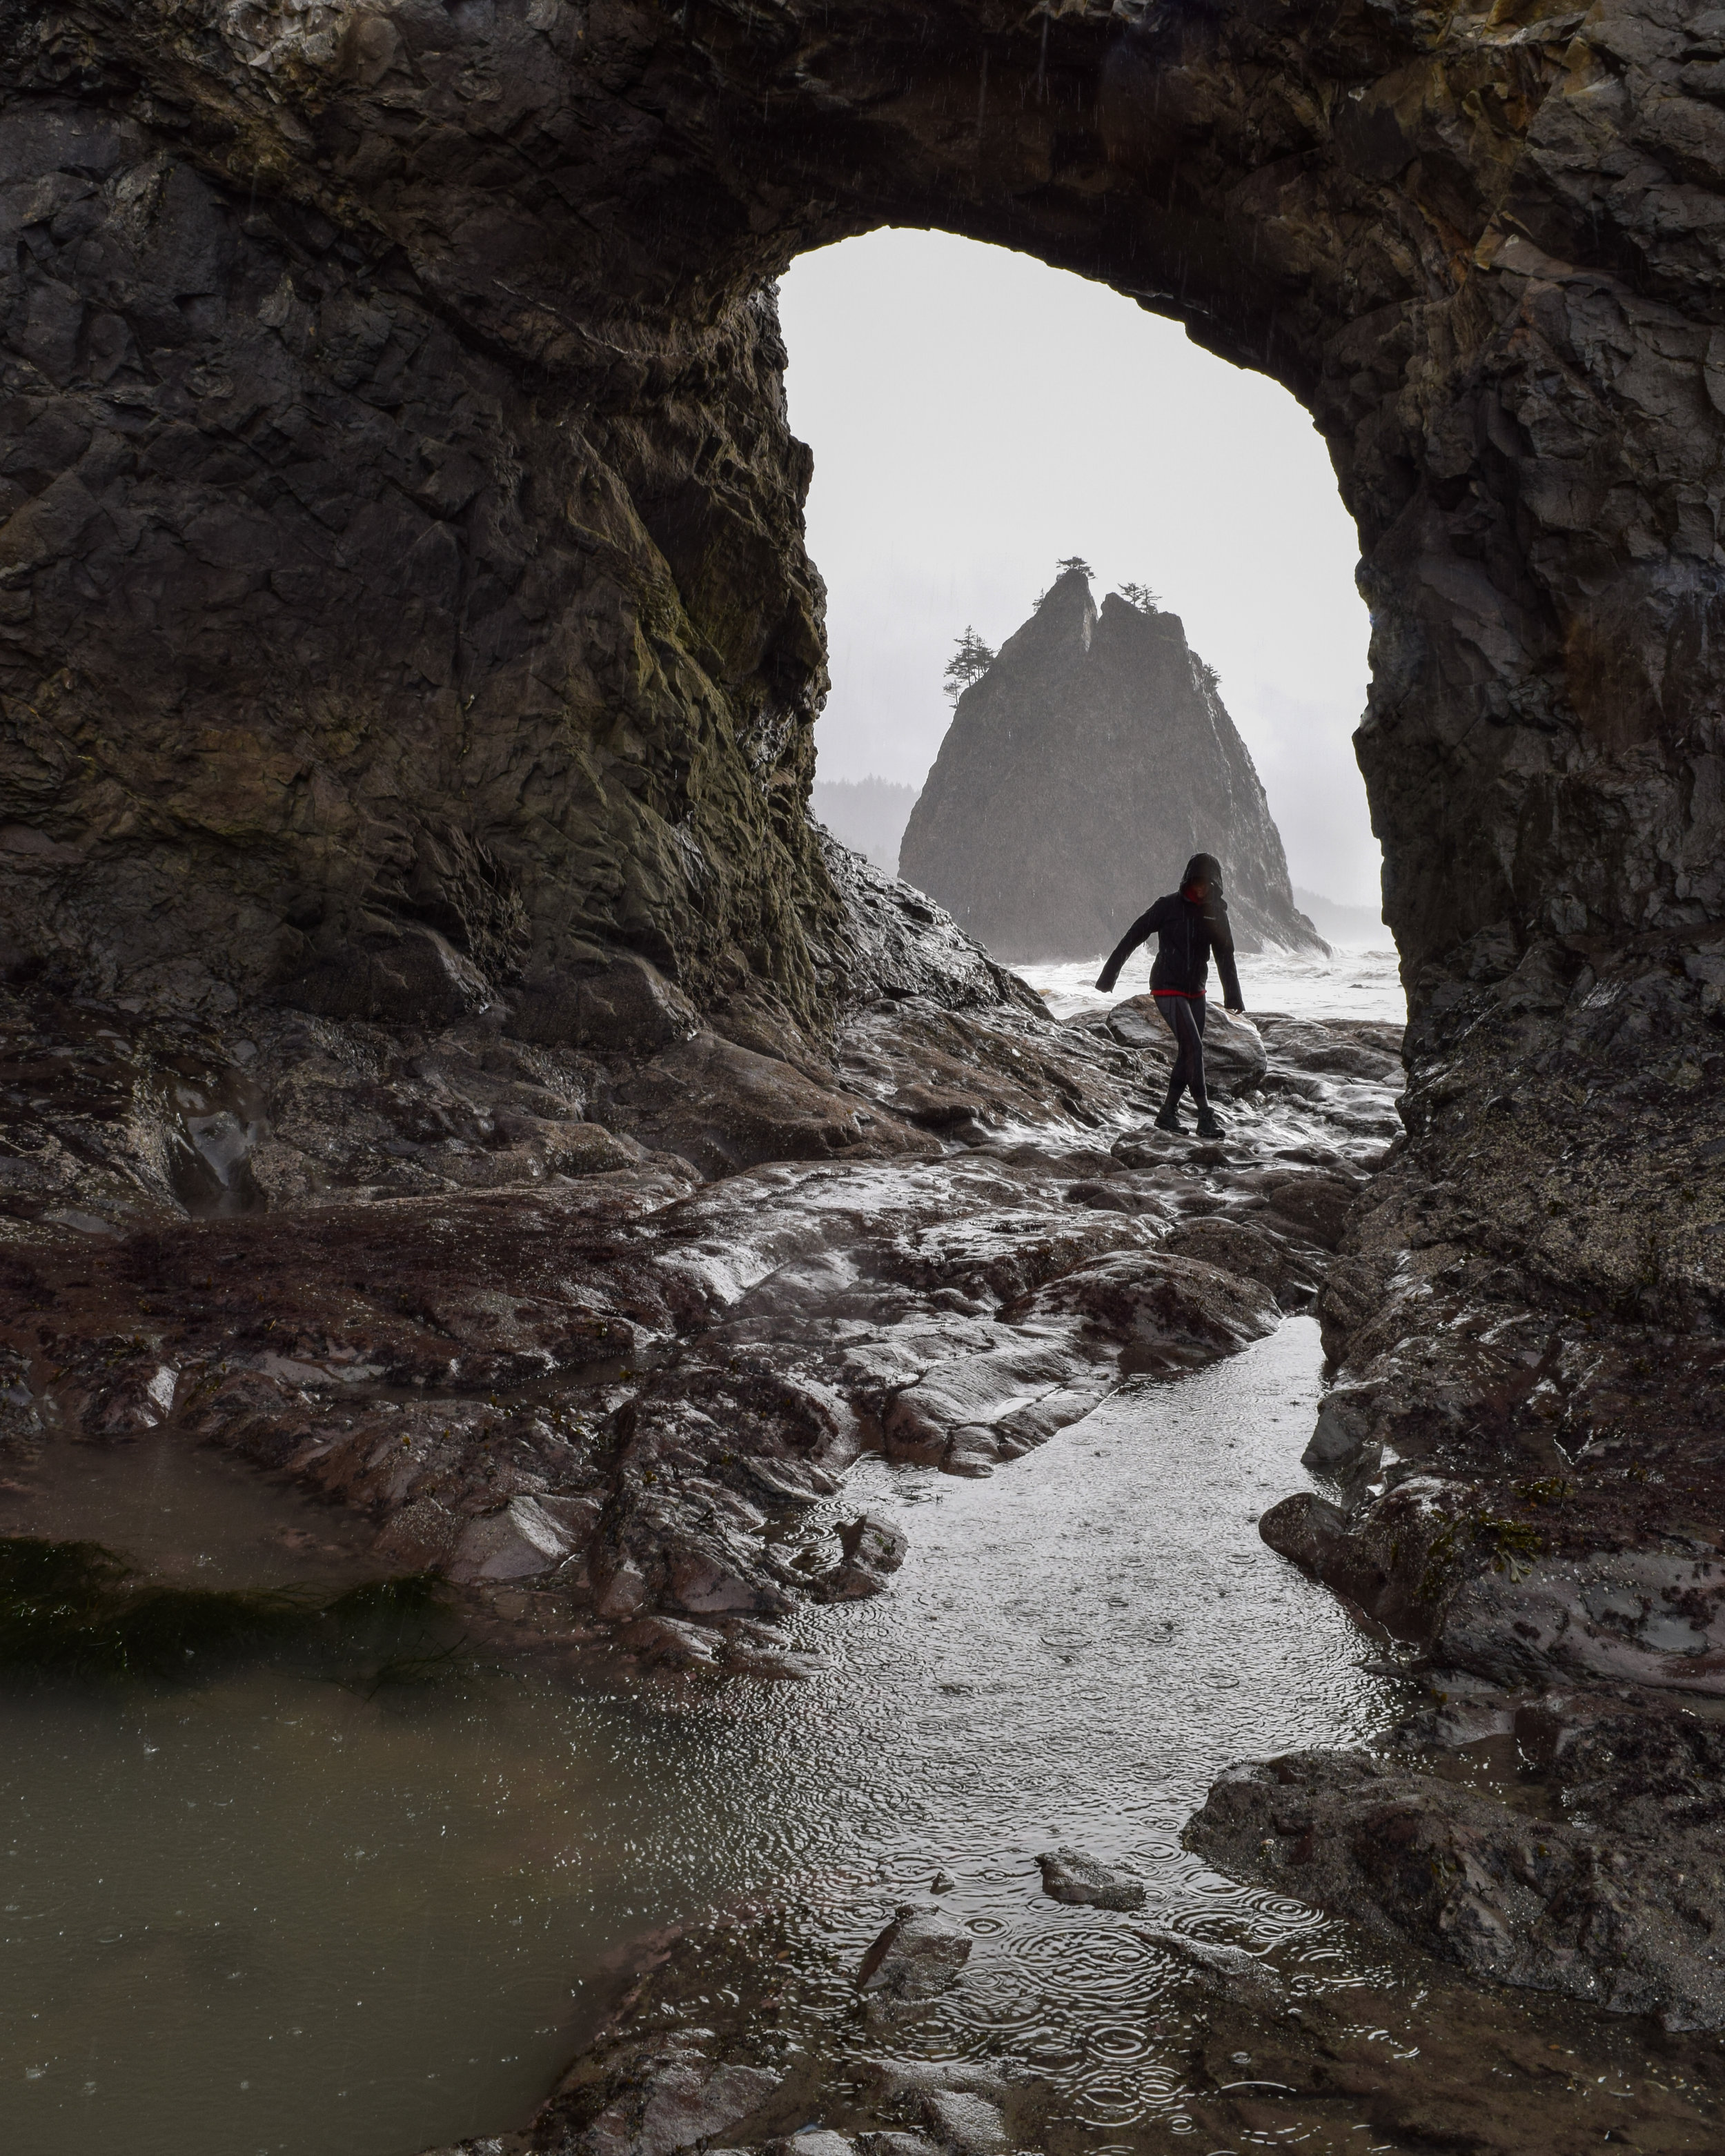 Hiking Through Hole in the Wall